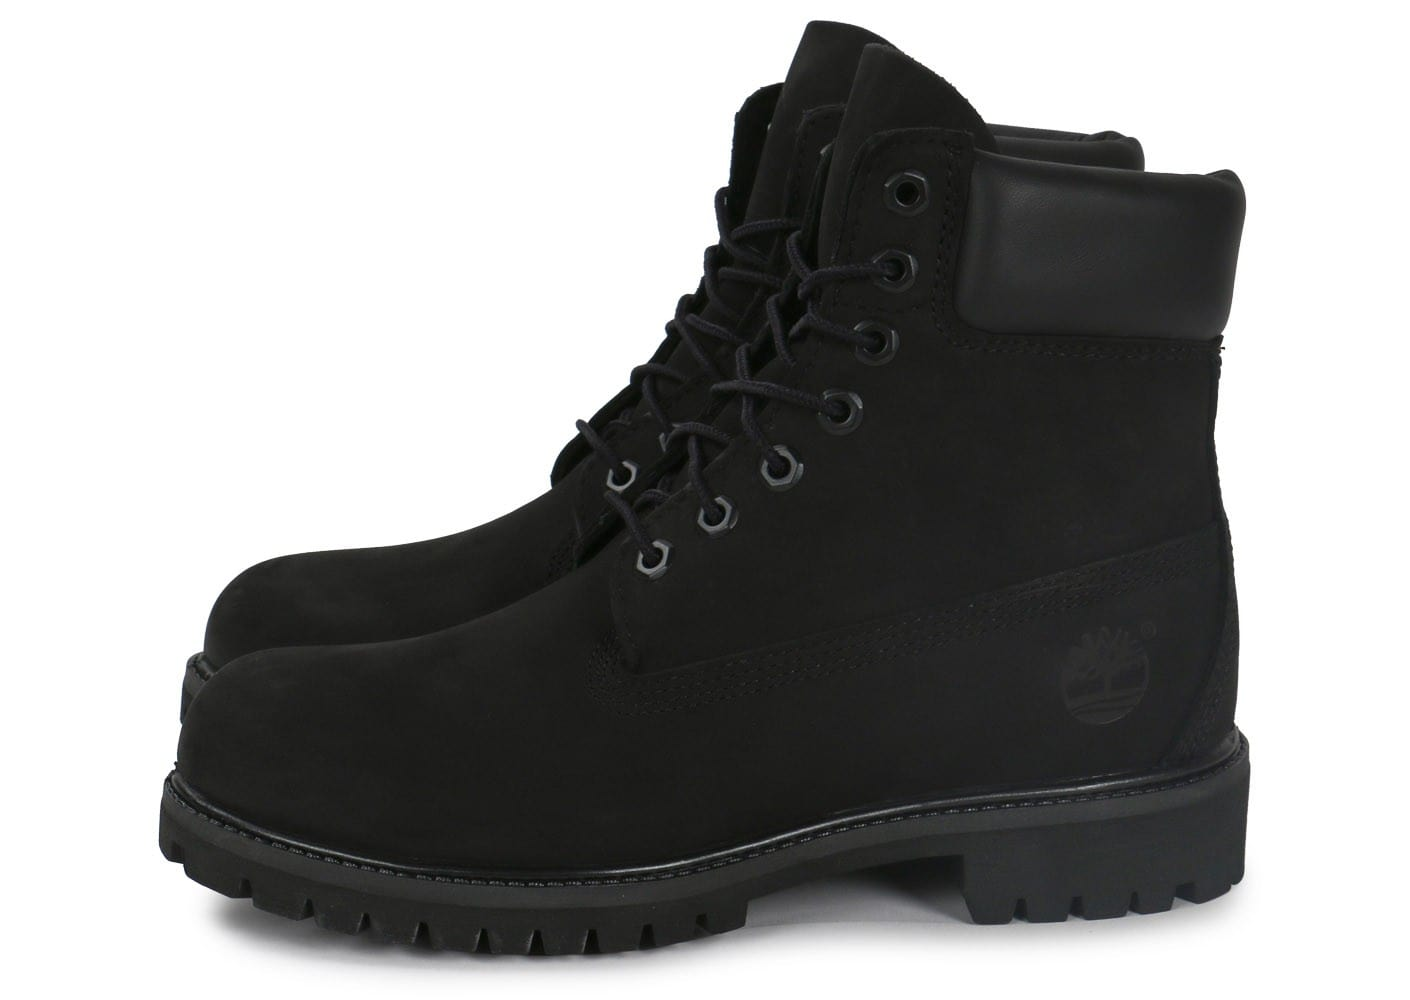 timberland 6 inch premium boot noir chaussures homme chausport. Black Bedroom Furniture Sets. Home Design Ideas